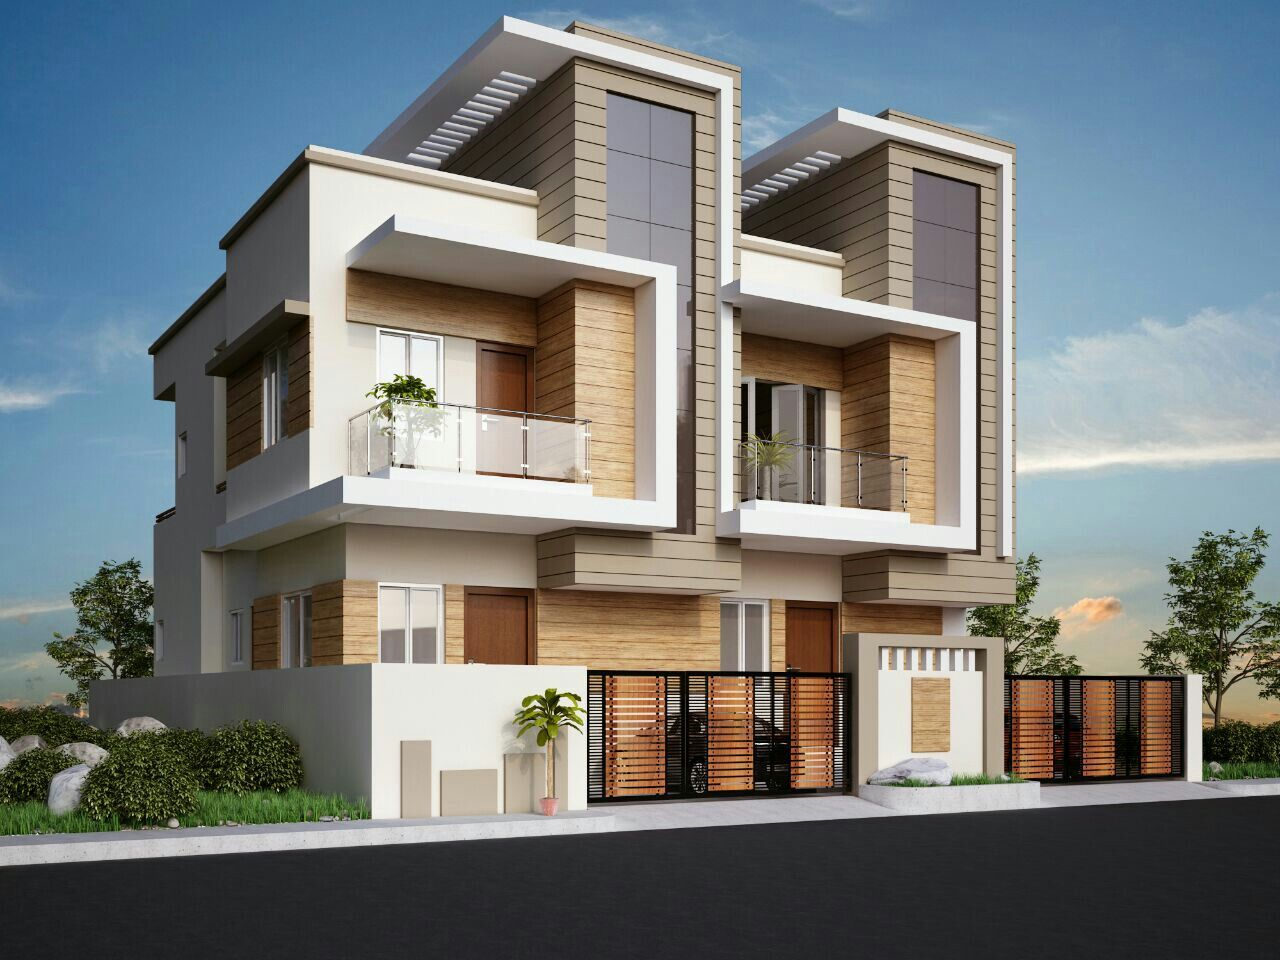 Twin Bungalows Row Housing In 2019 House Design